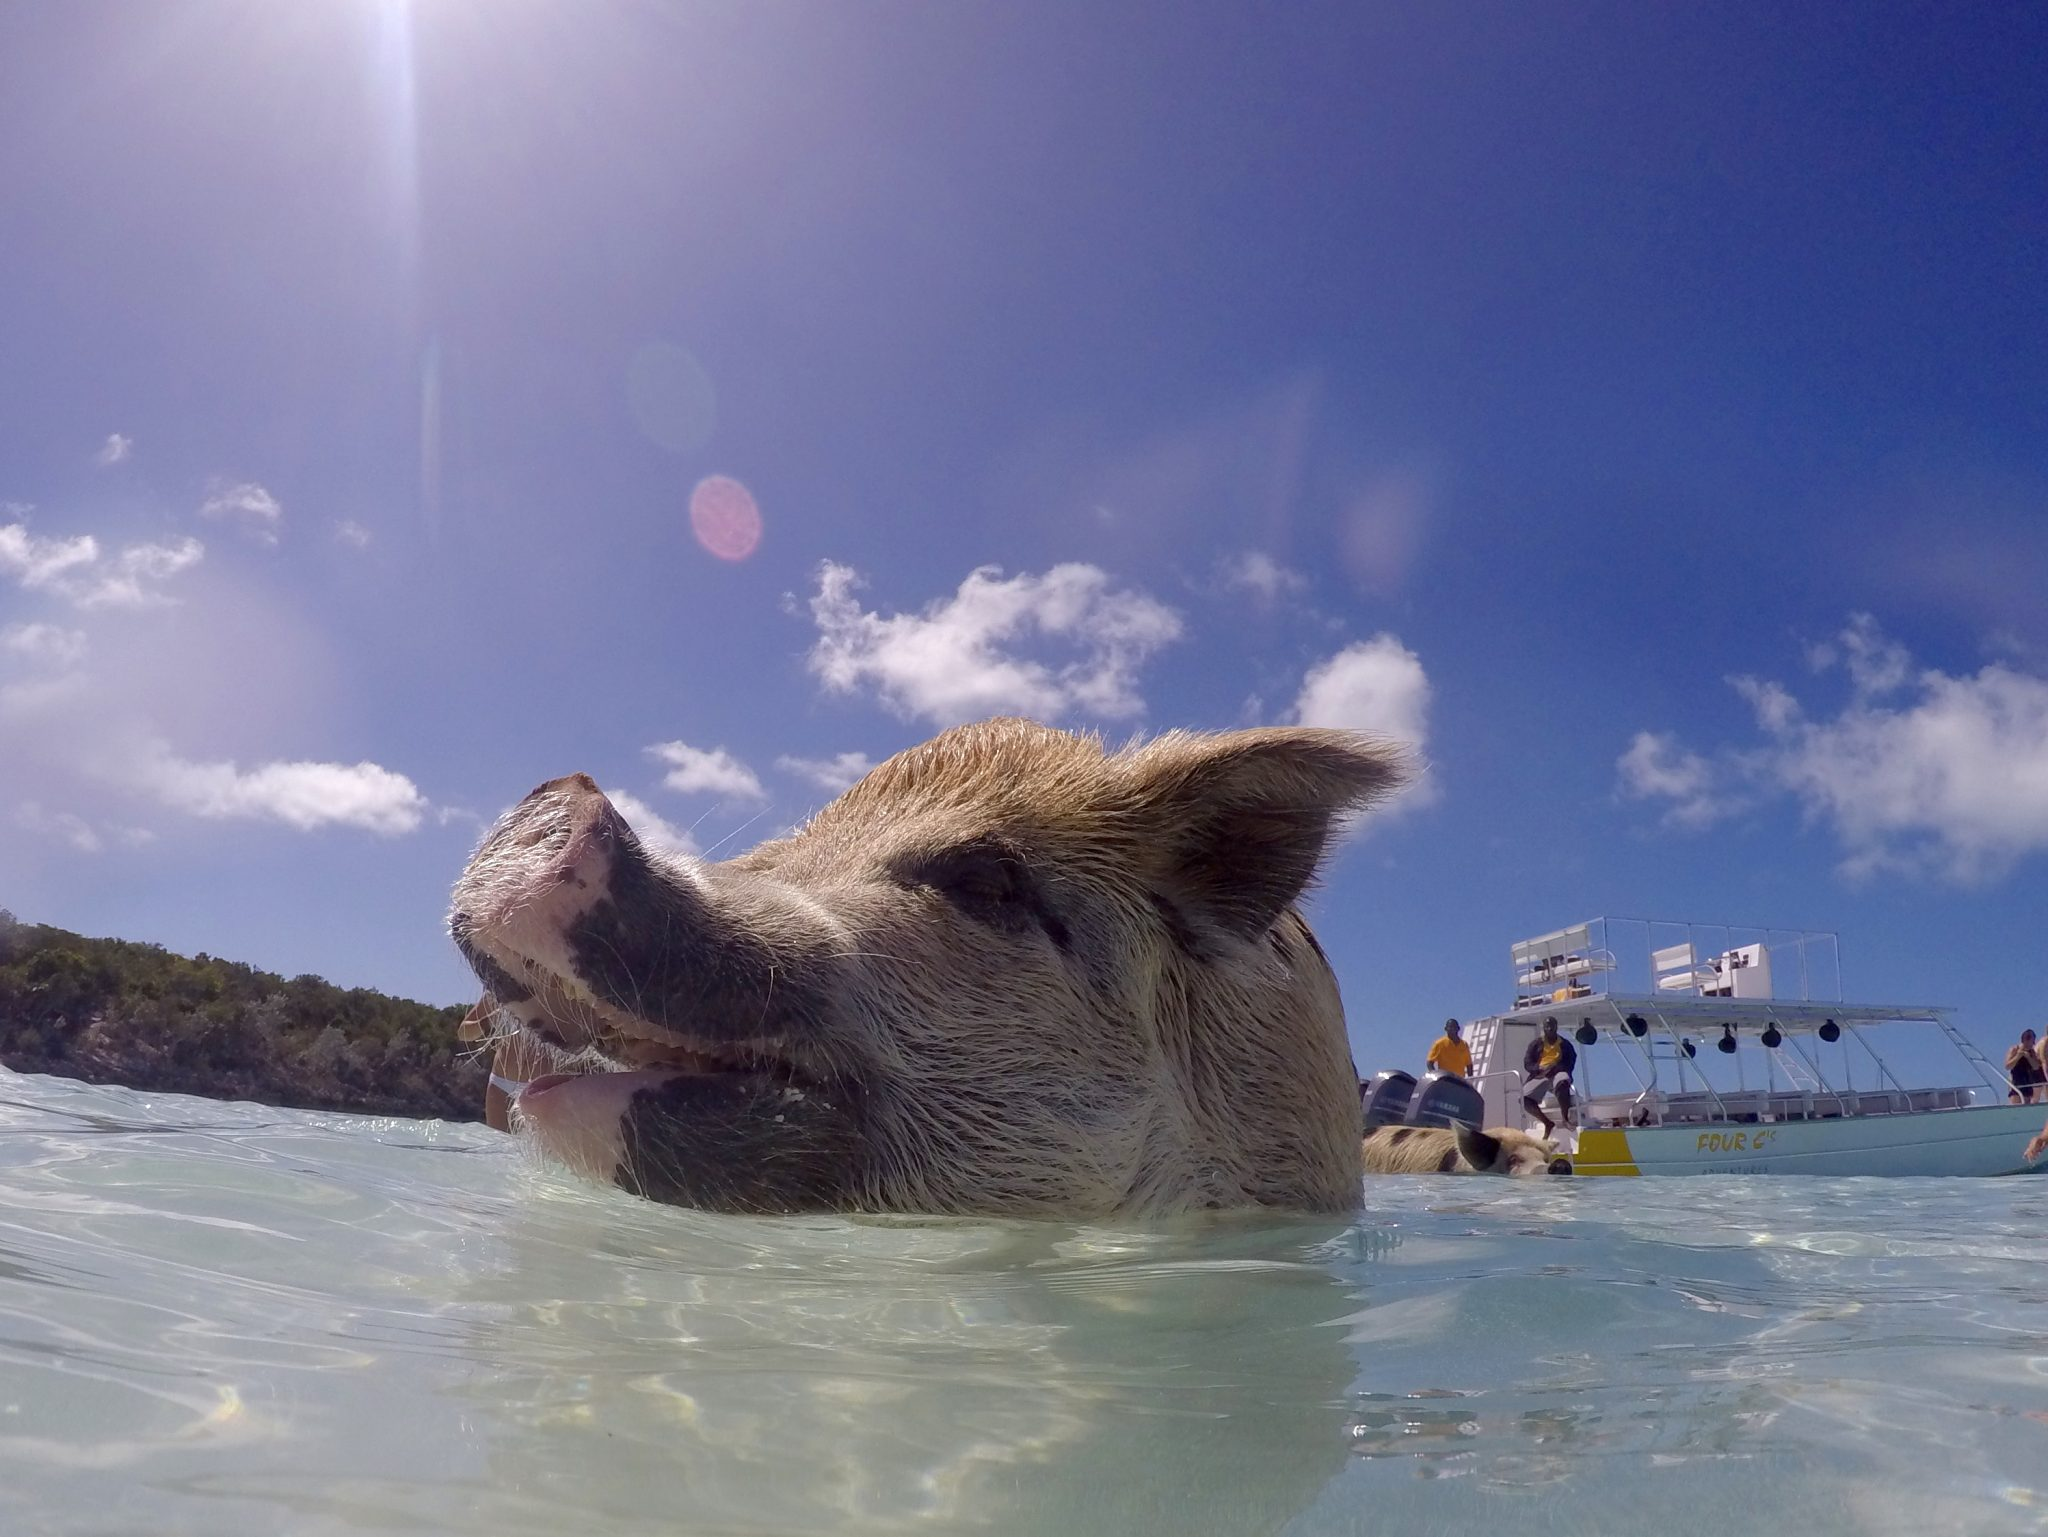 exuma, bahamas, swimming pig